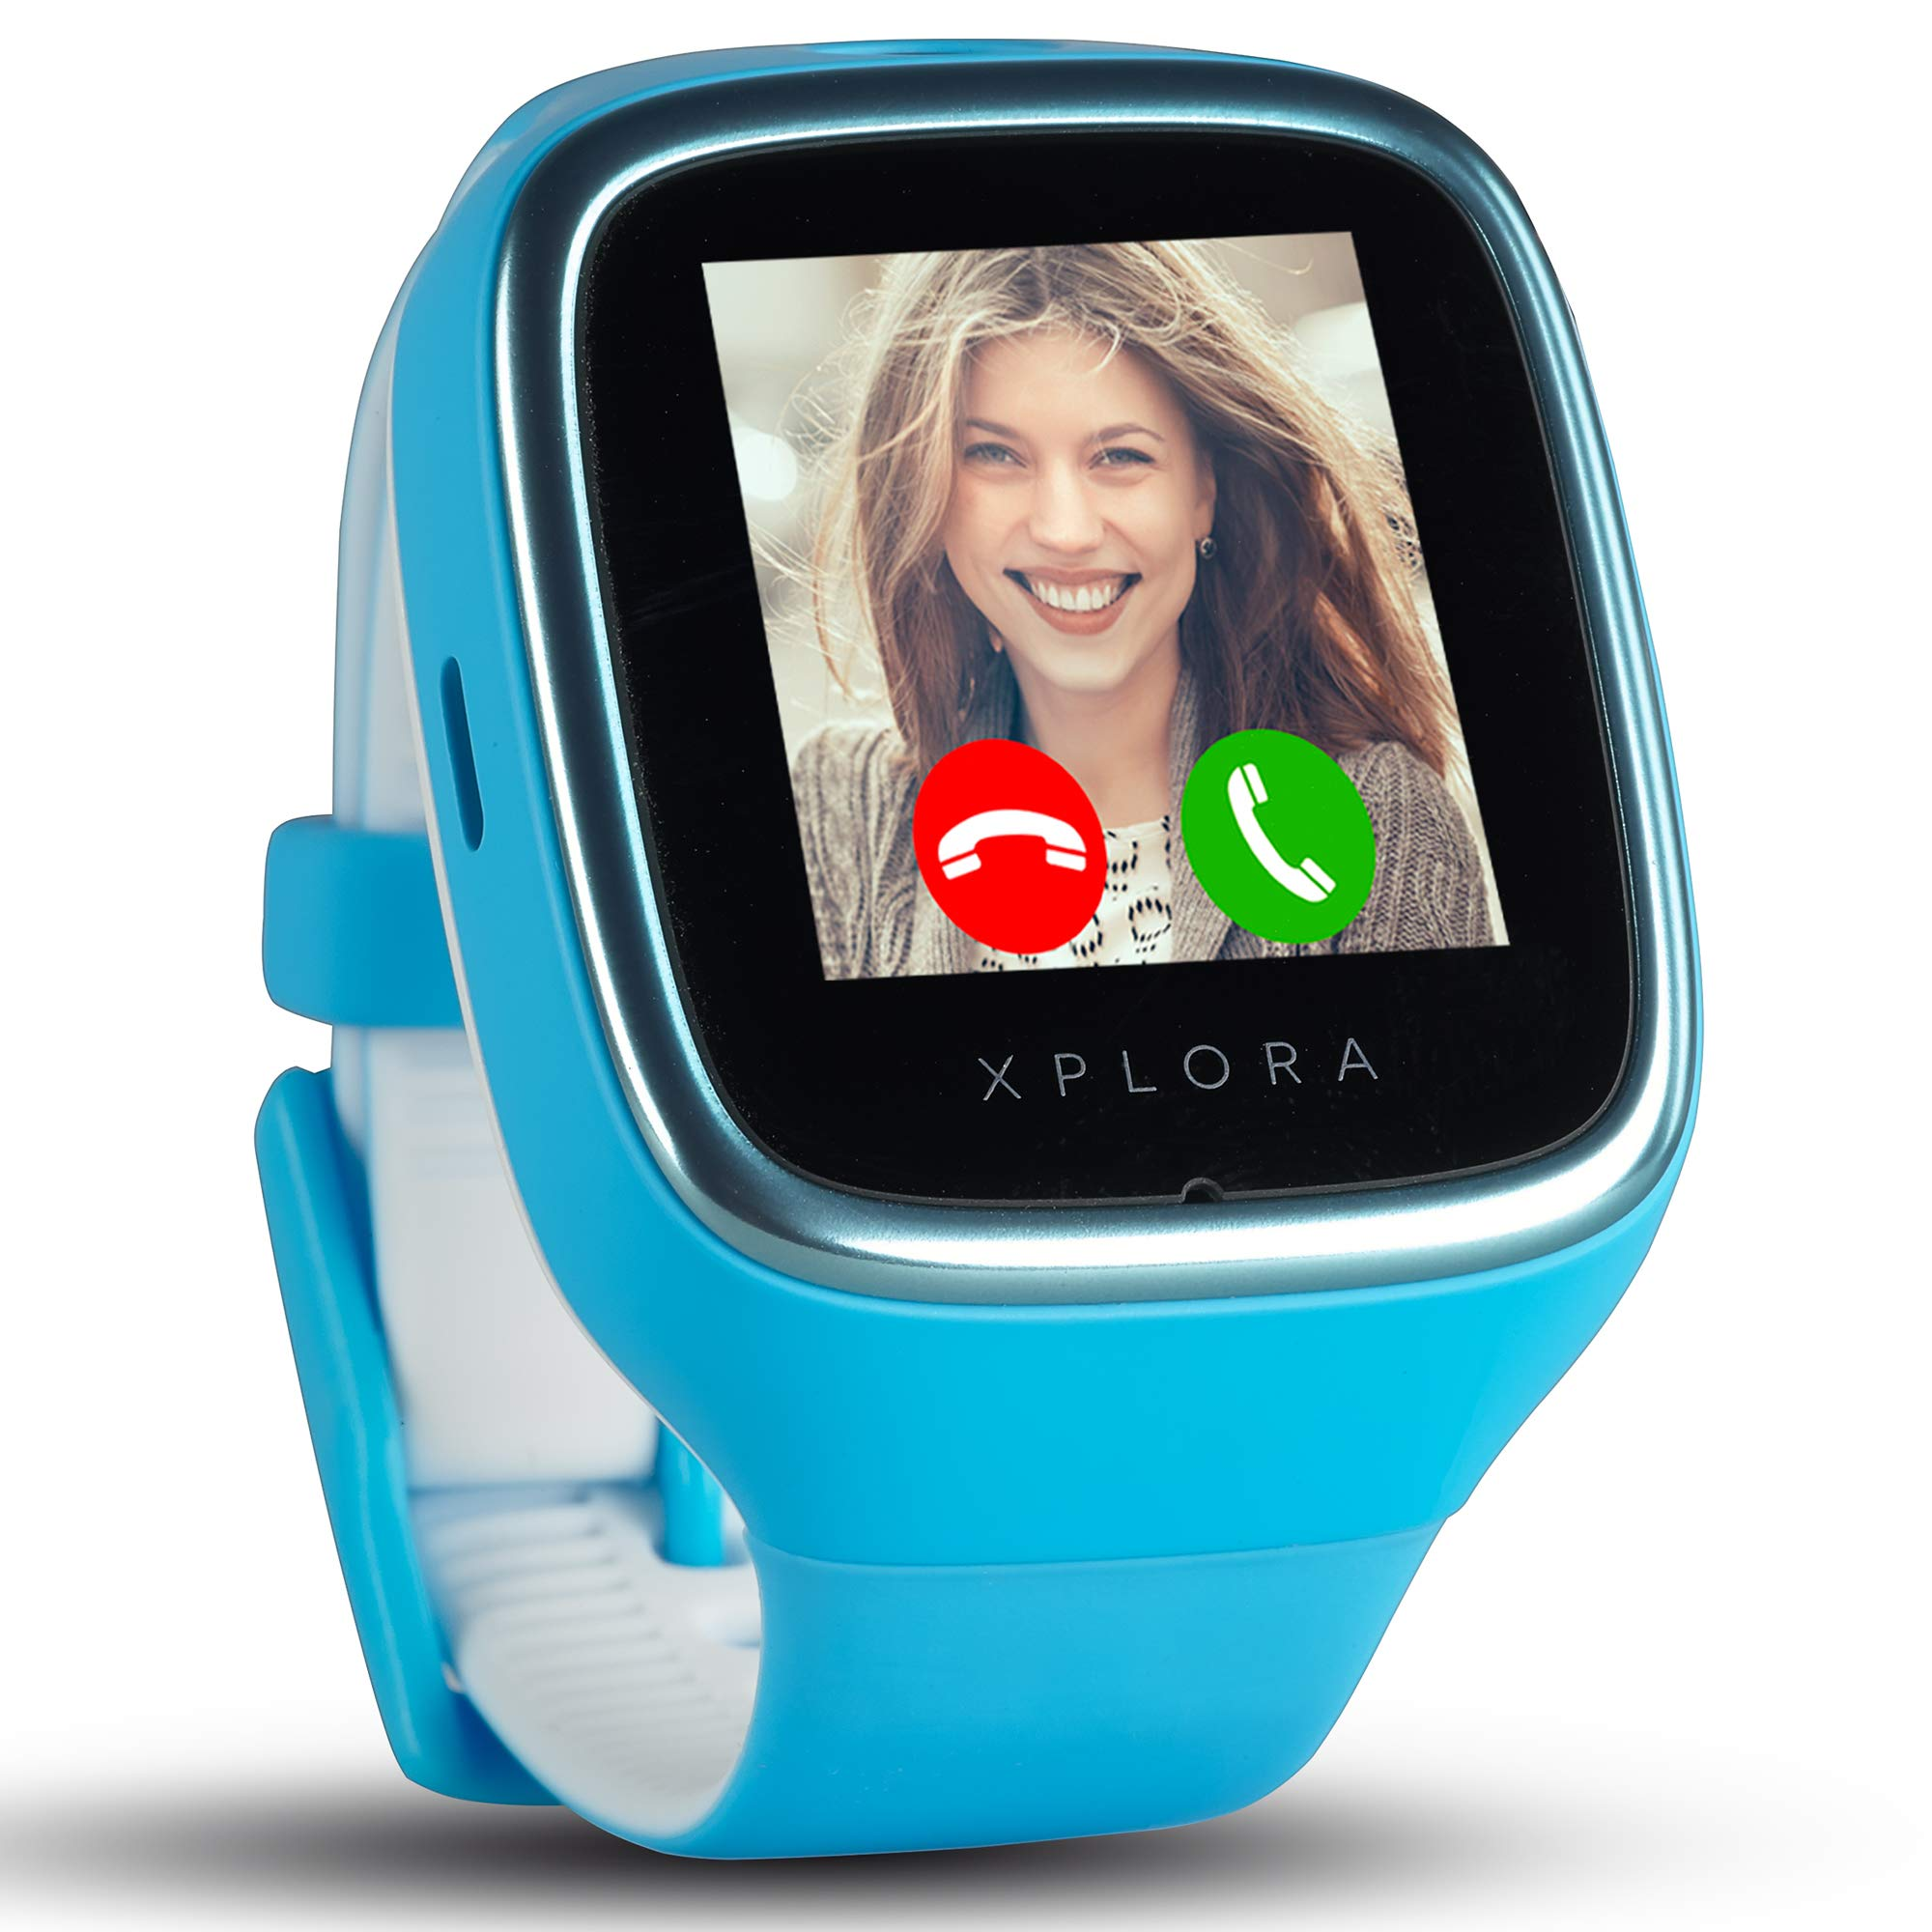 XPLORA 3S - Waterproof Watch Phone for children (SIM Free) - Calls, Messages, Kids School Mode, SOS function, GPS Location and Camera - Includes 2 Year Warranty (BLUE)